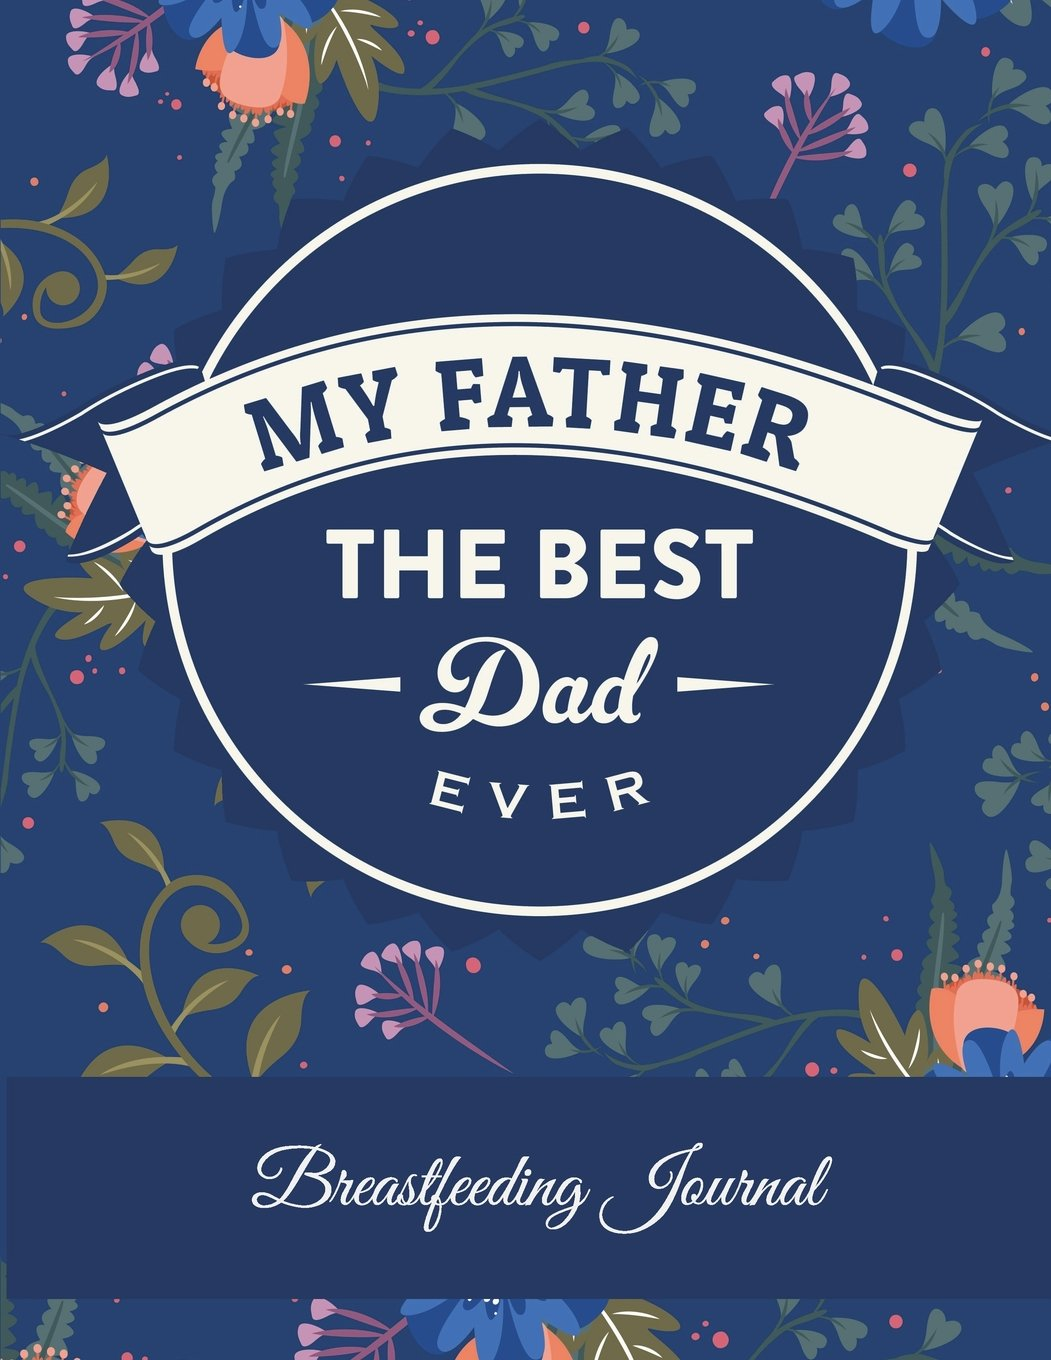 My Father The Best Dad Ever: Breastfeeding Journal: Father Quotes, Newborn Sleep Newborn Feeding logbook, Baby's Eat, Sleep, Poop Schedule Log Journal ... Record Notebook, Meal & Diapers Recorder ebook